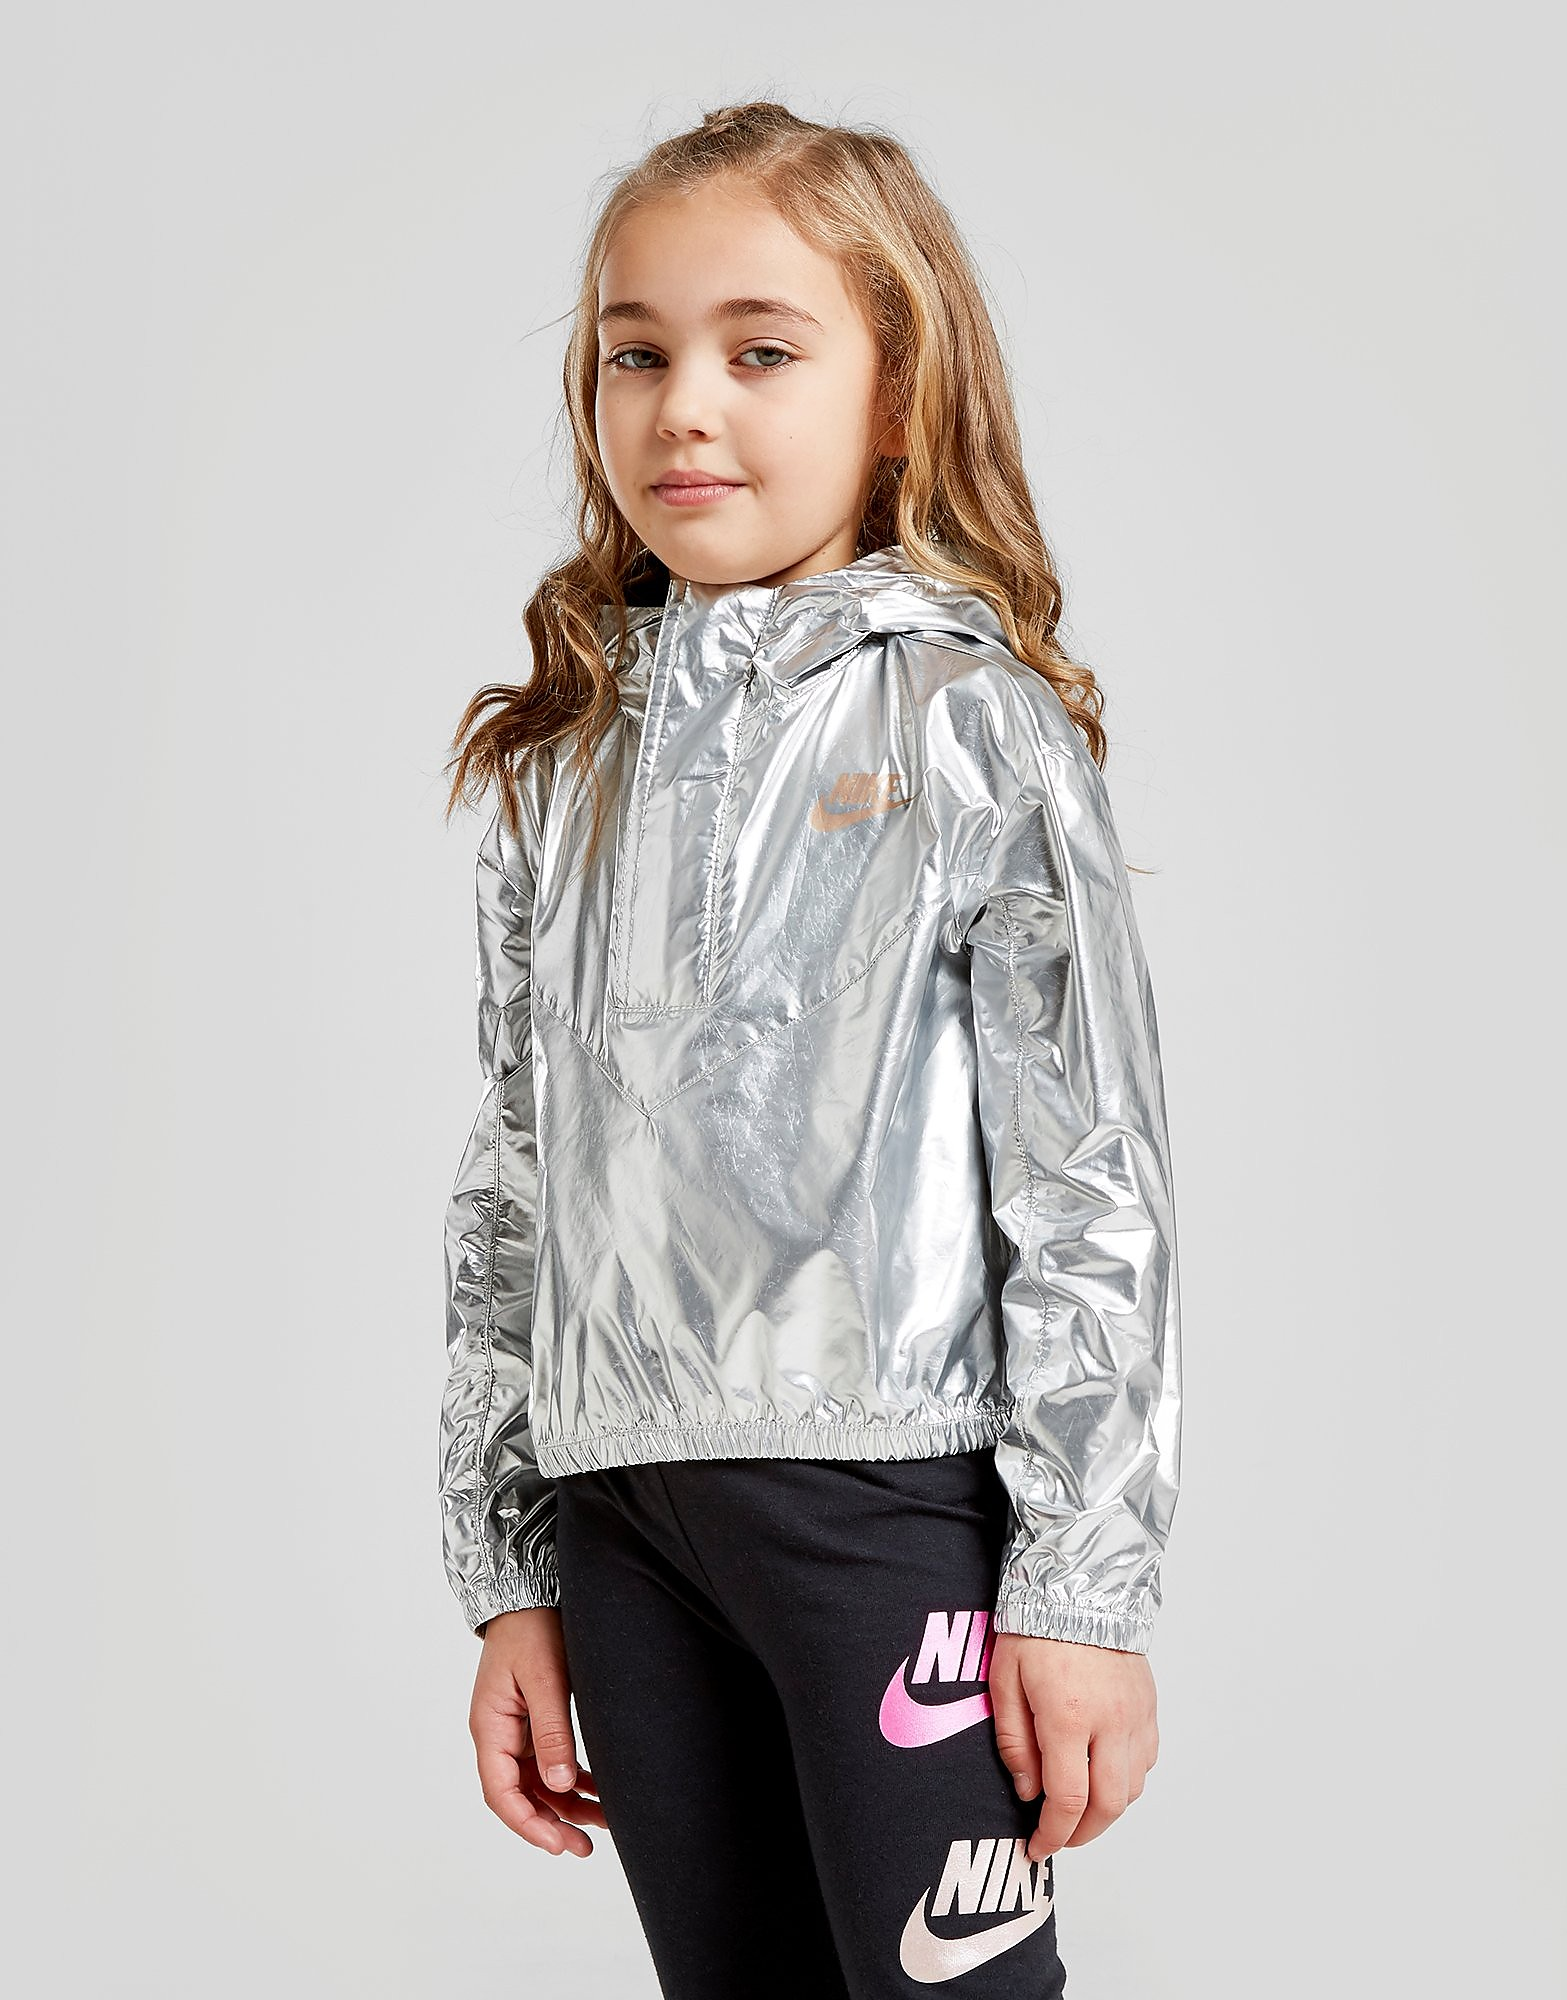 Nike Girls' Shine Metallic Jacket Kinderen - Zilver - Kind